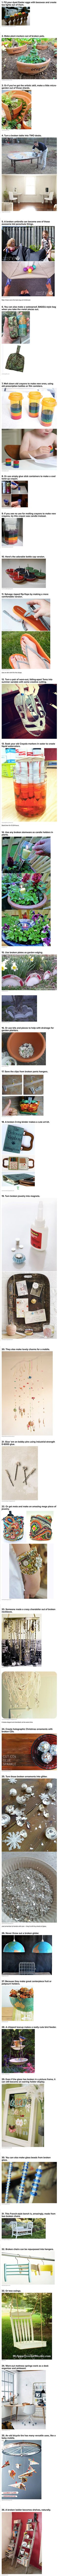 429 Best Fixing Home Images On Pinterest In 2018 Diy Ideas For Creative And Cool Ways To Reuse Old Circuit Boards 15 12 Here Are Some Broken Things A Little Odd But Pretty Clever